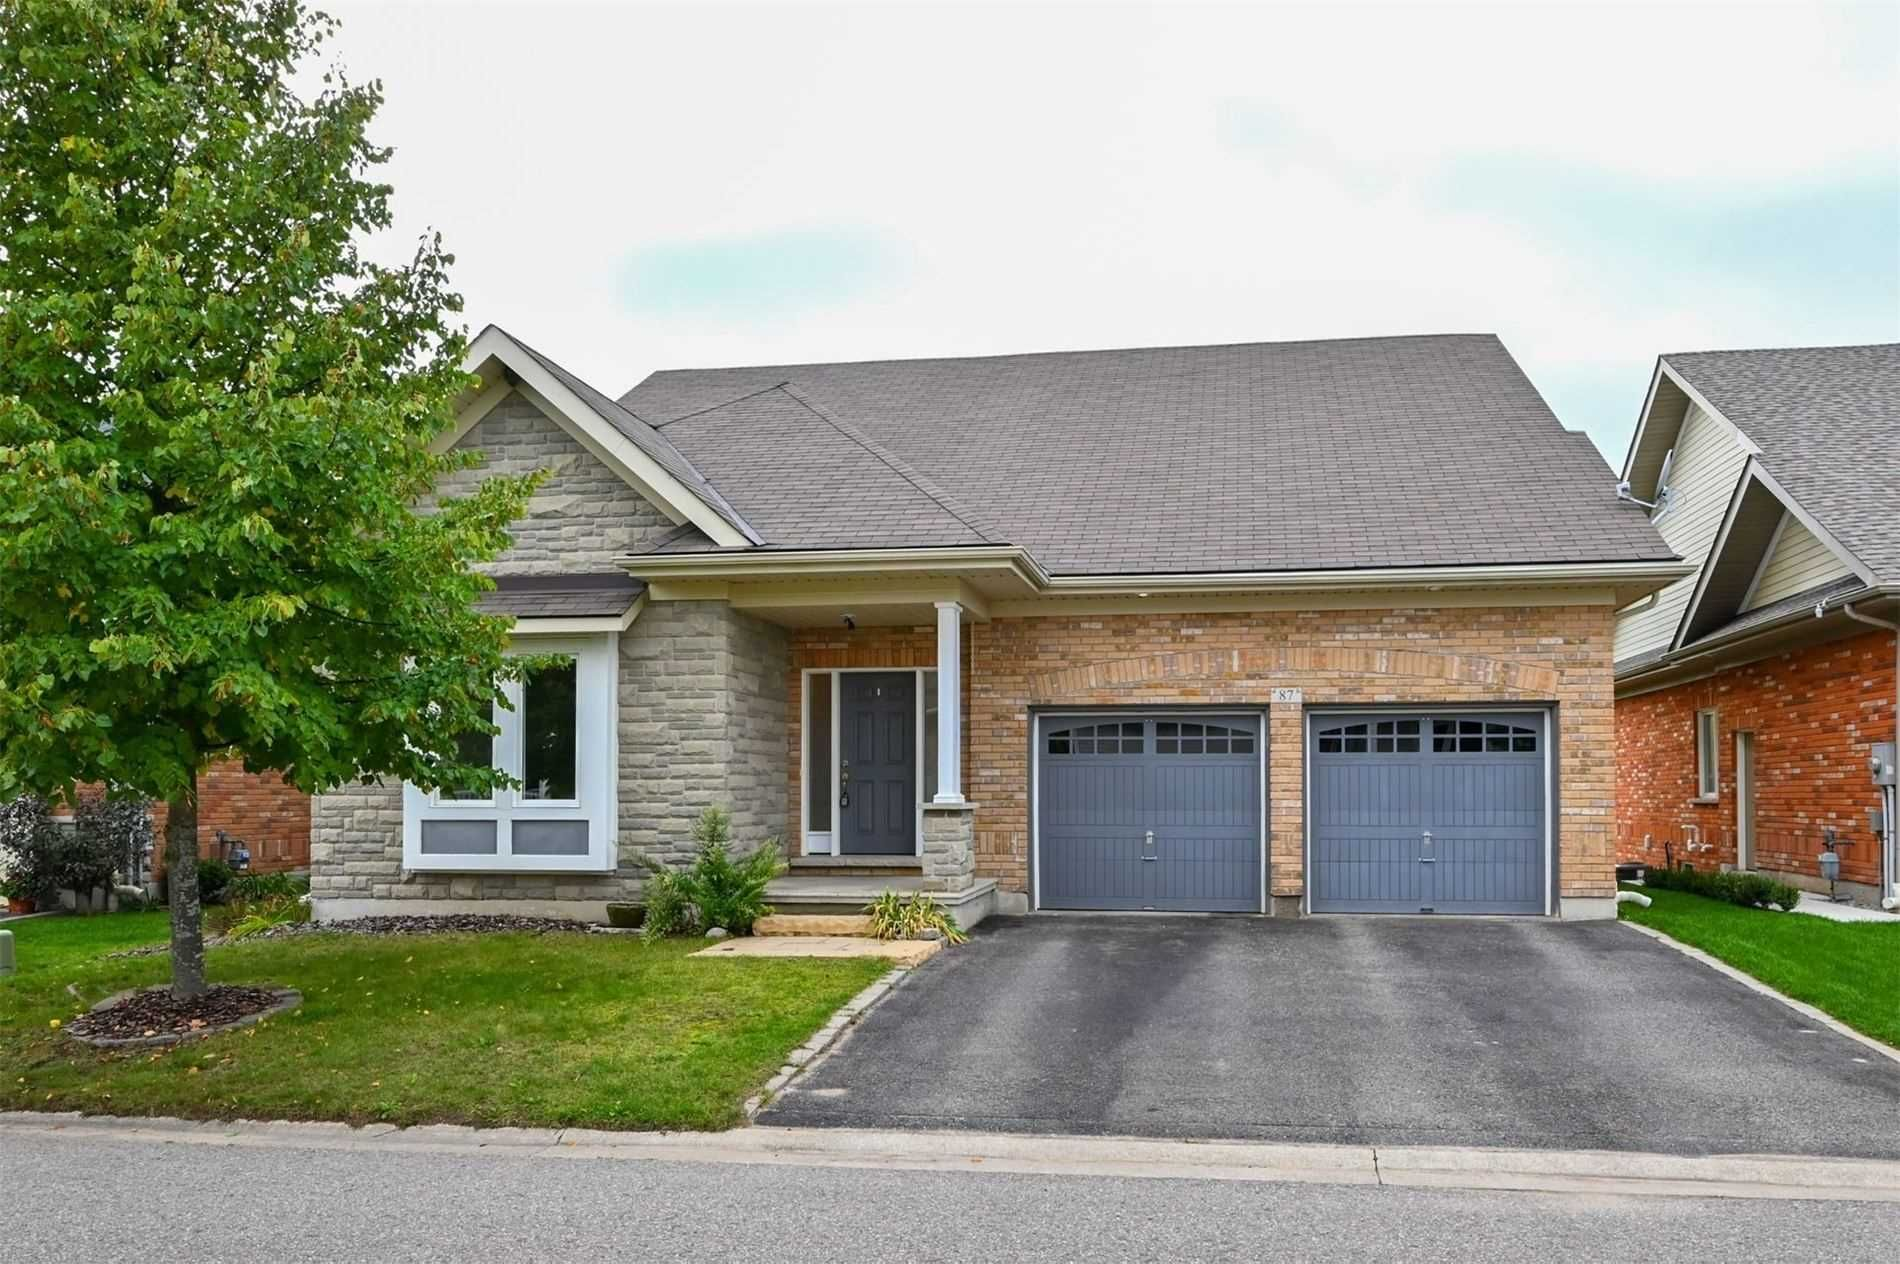 Main Photo: 87 200 Kingfisher Drive in Mono: Rural Mono House (Bungalow) for sale : MLS®# X5397230